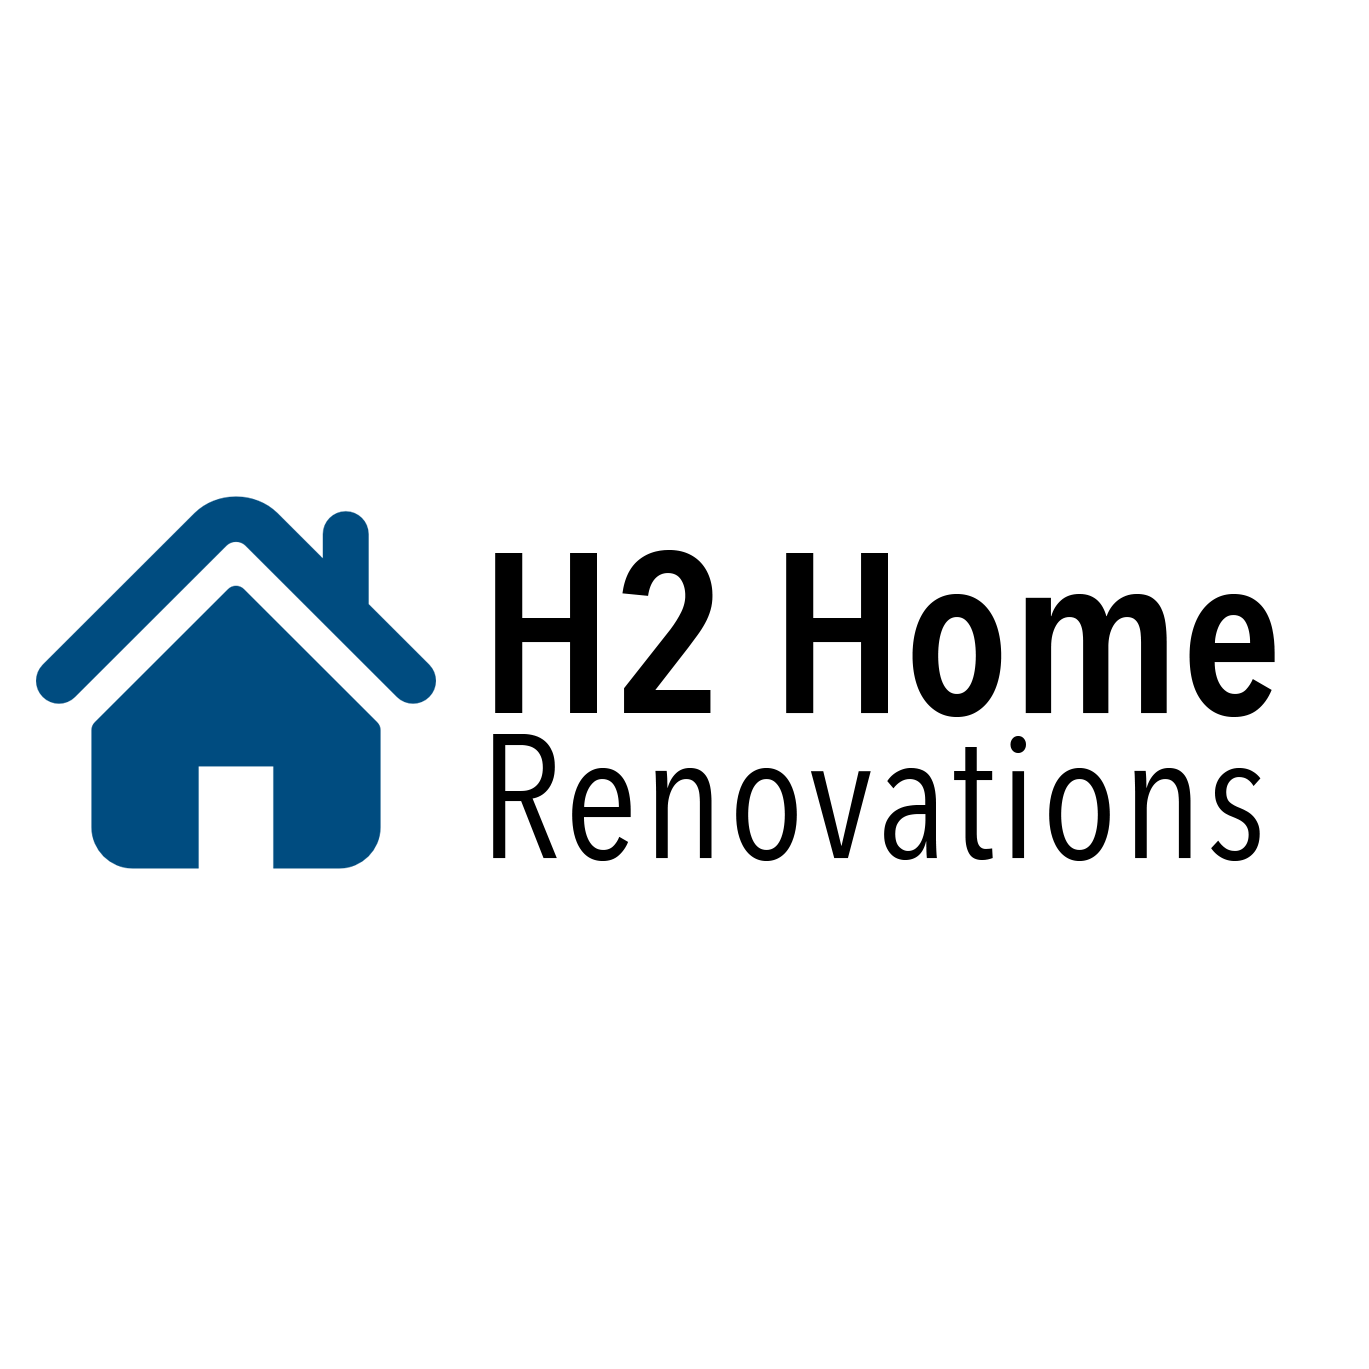 H2 Home Renovations